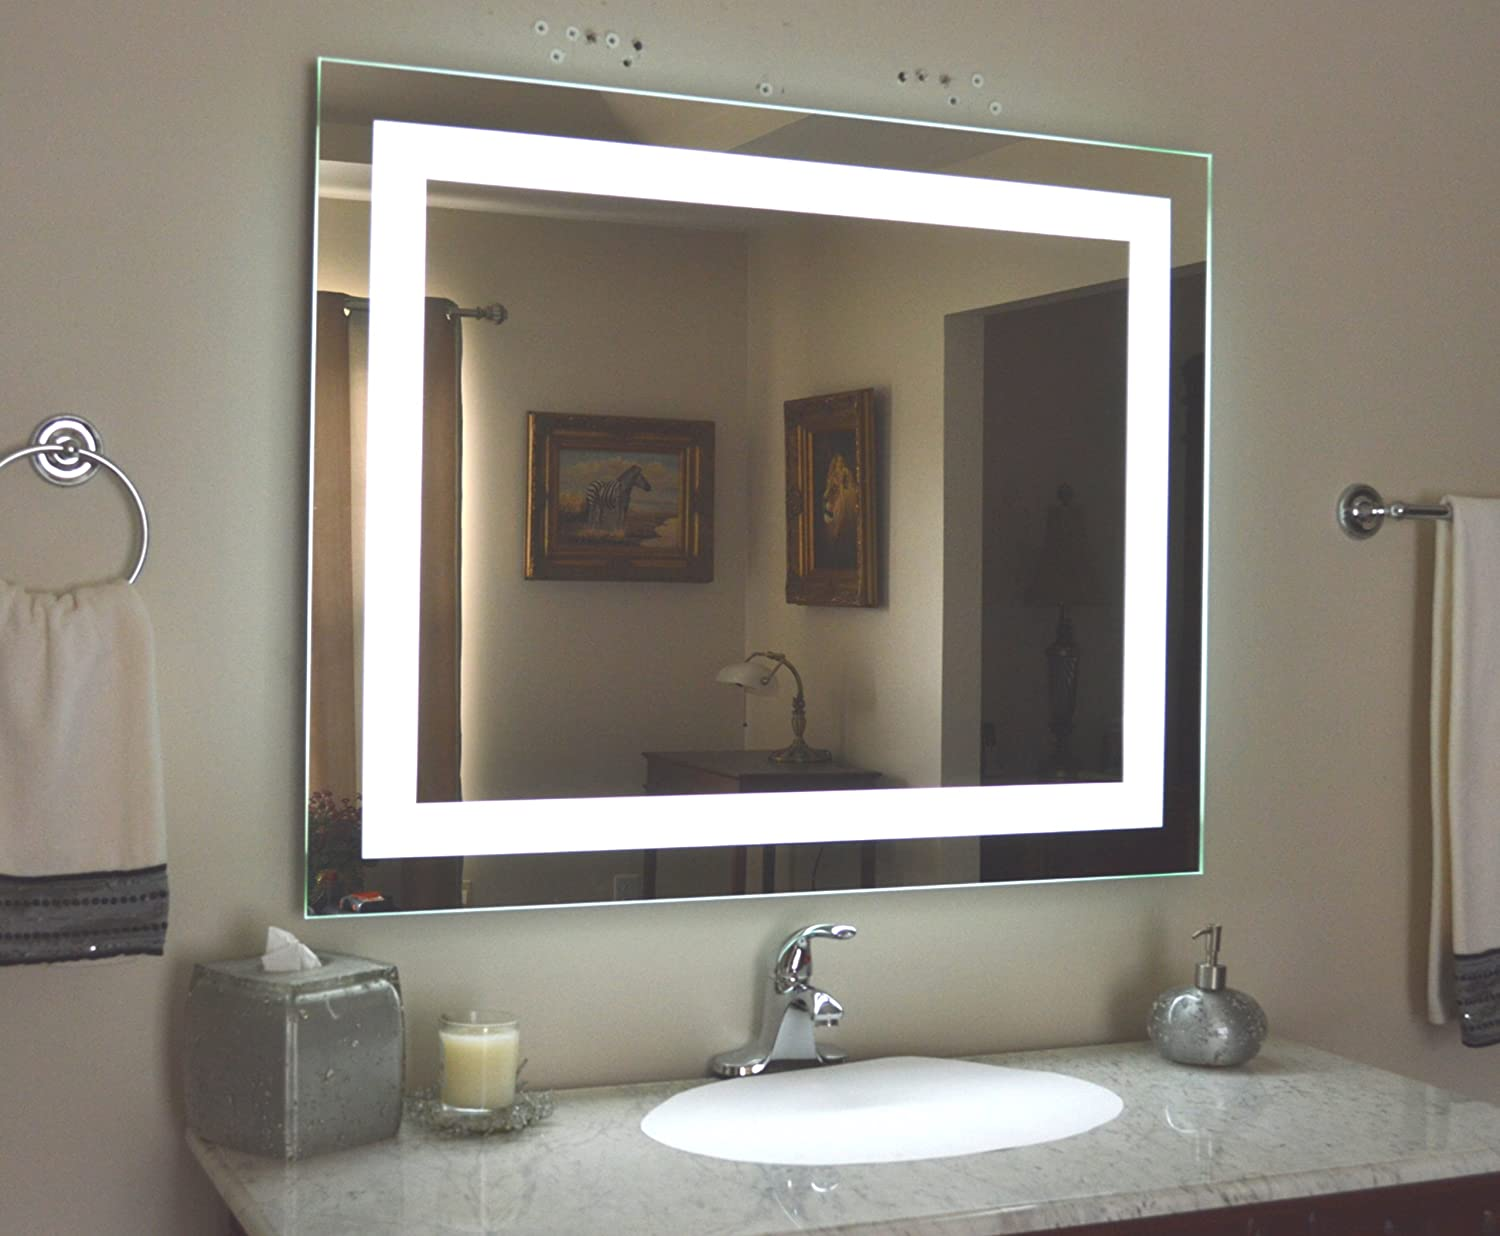 Amazon wall mounted lighted vanity mirror led mam84032 amazon wall mounted lighted vanity mirror led mam84032 commercial grade 40 home kitchen aloadofball